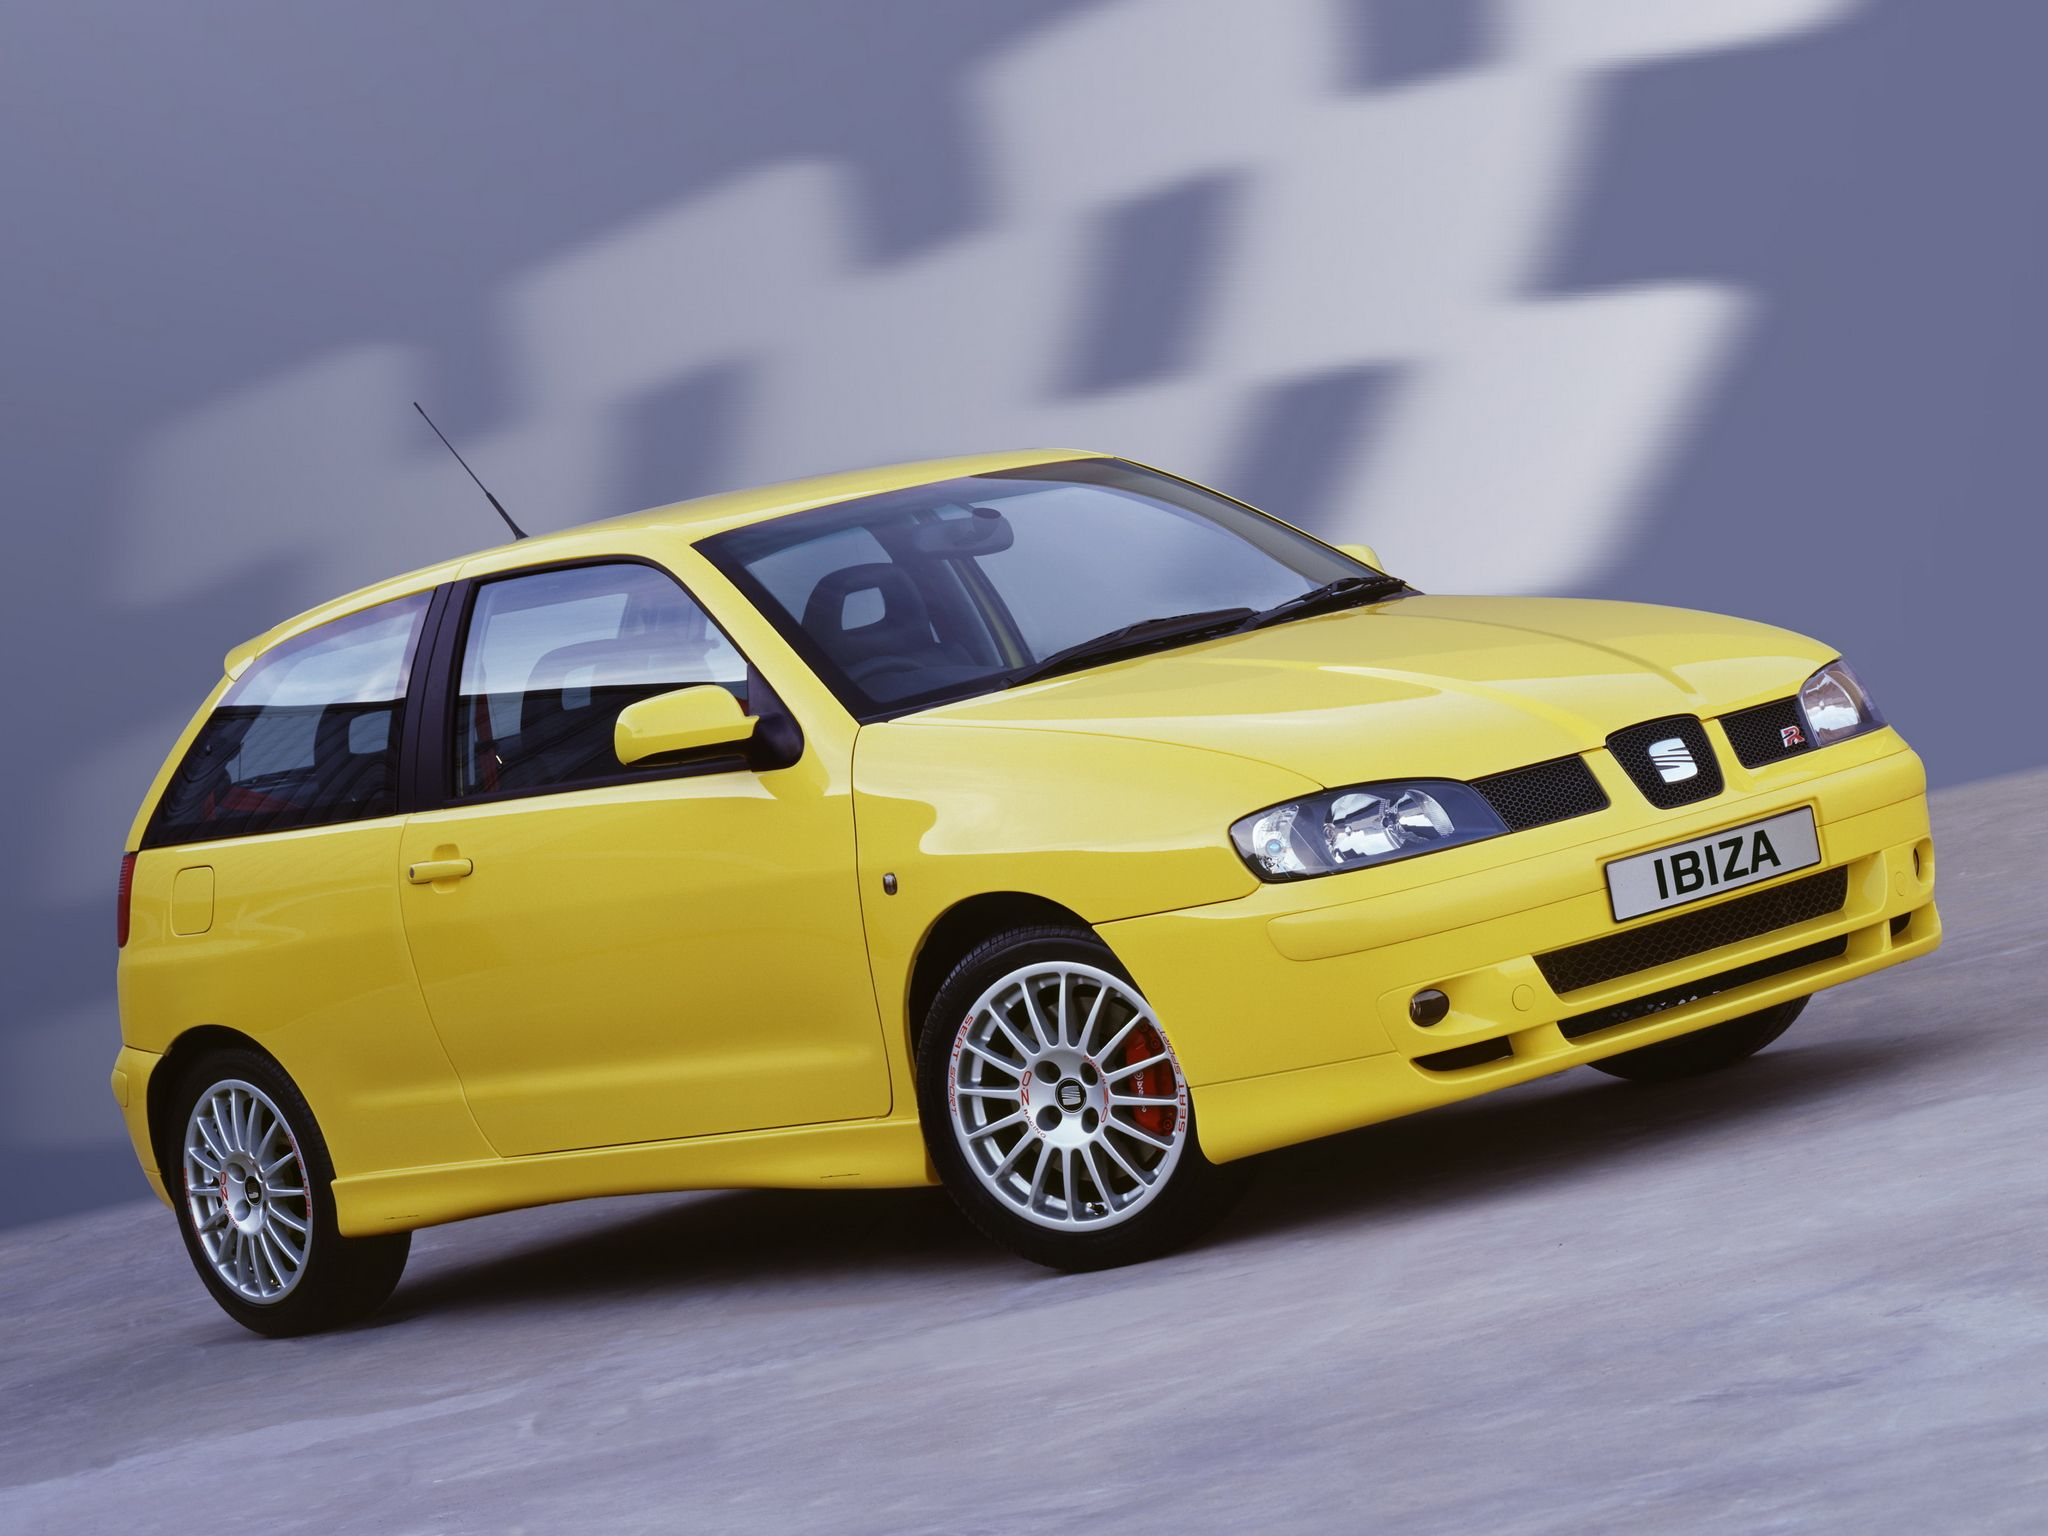 seat ibiza cupra r 39 2001 limited edition cars pinterest cars. Black Bedroom Furniture Sets. Home Design Ideas